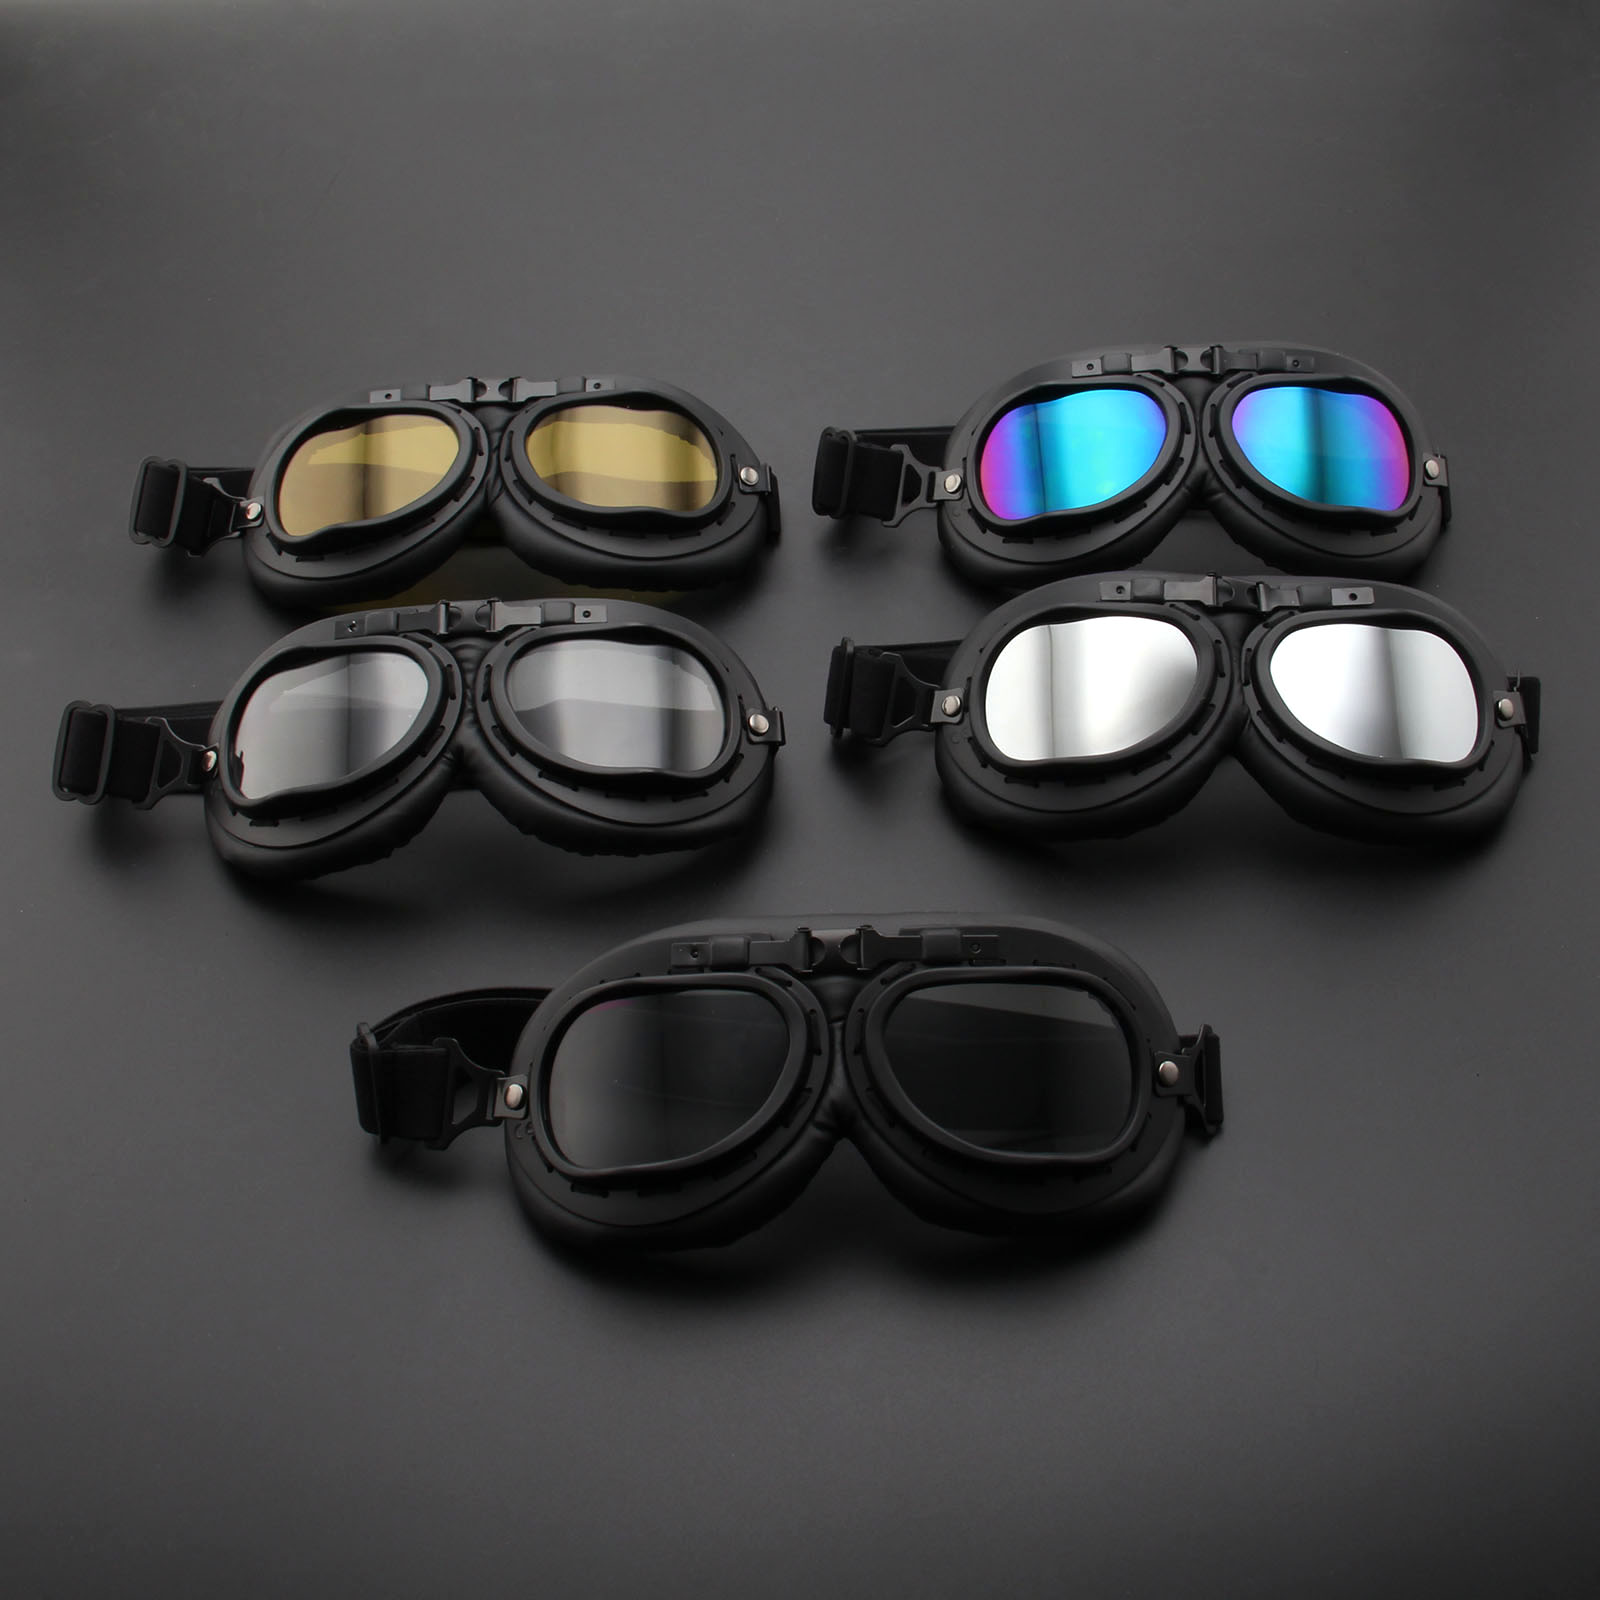 New Retro Motorcycle Goggles Glasses Vintage Motor Classic Goggles For Pilot Steampunk ATV Bike Copper Helmet Ski OutSport